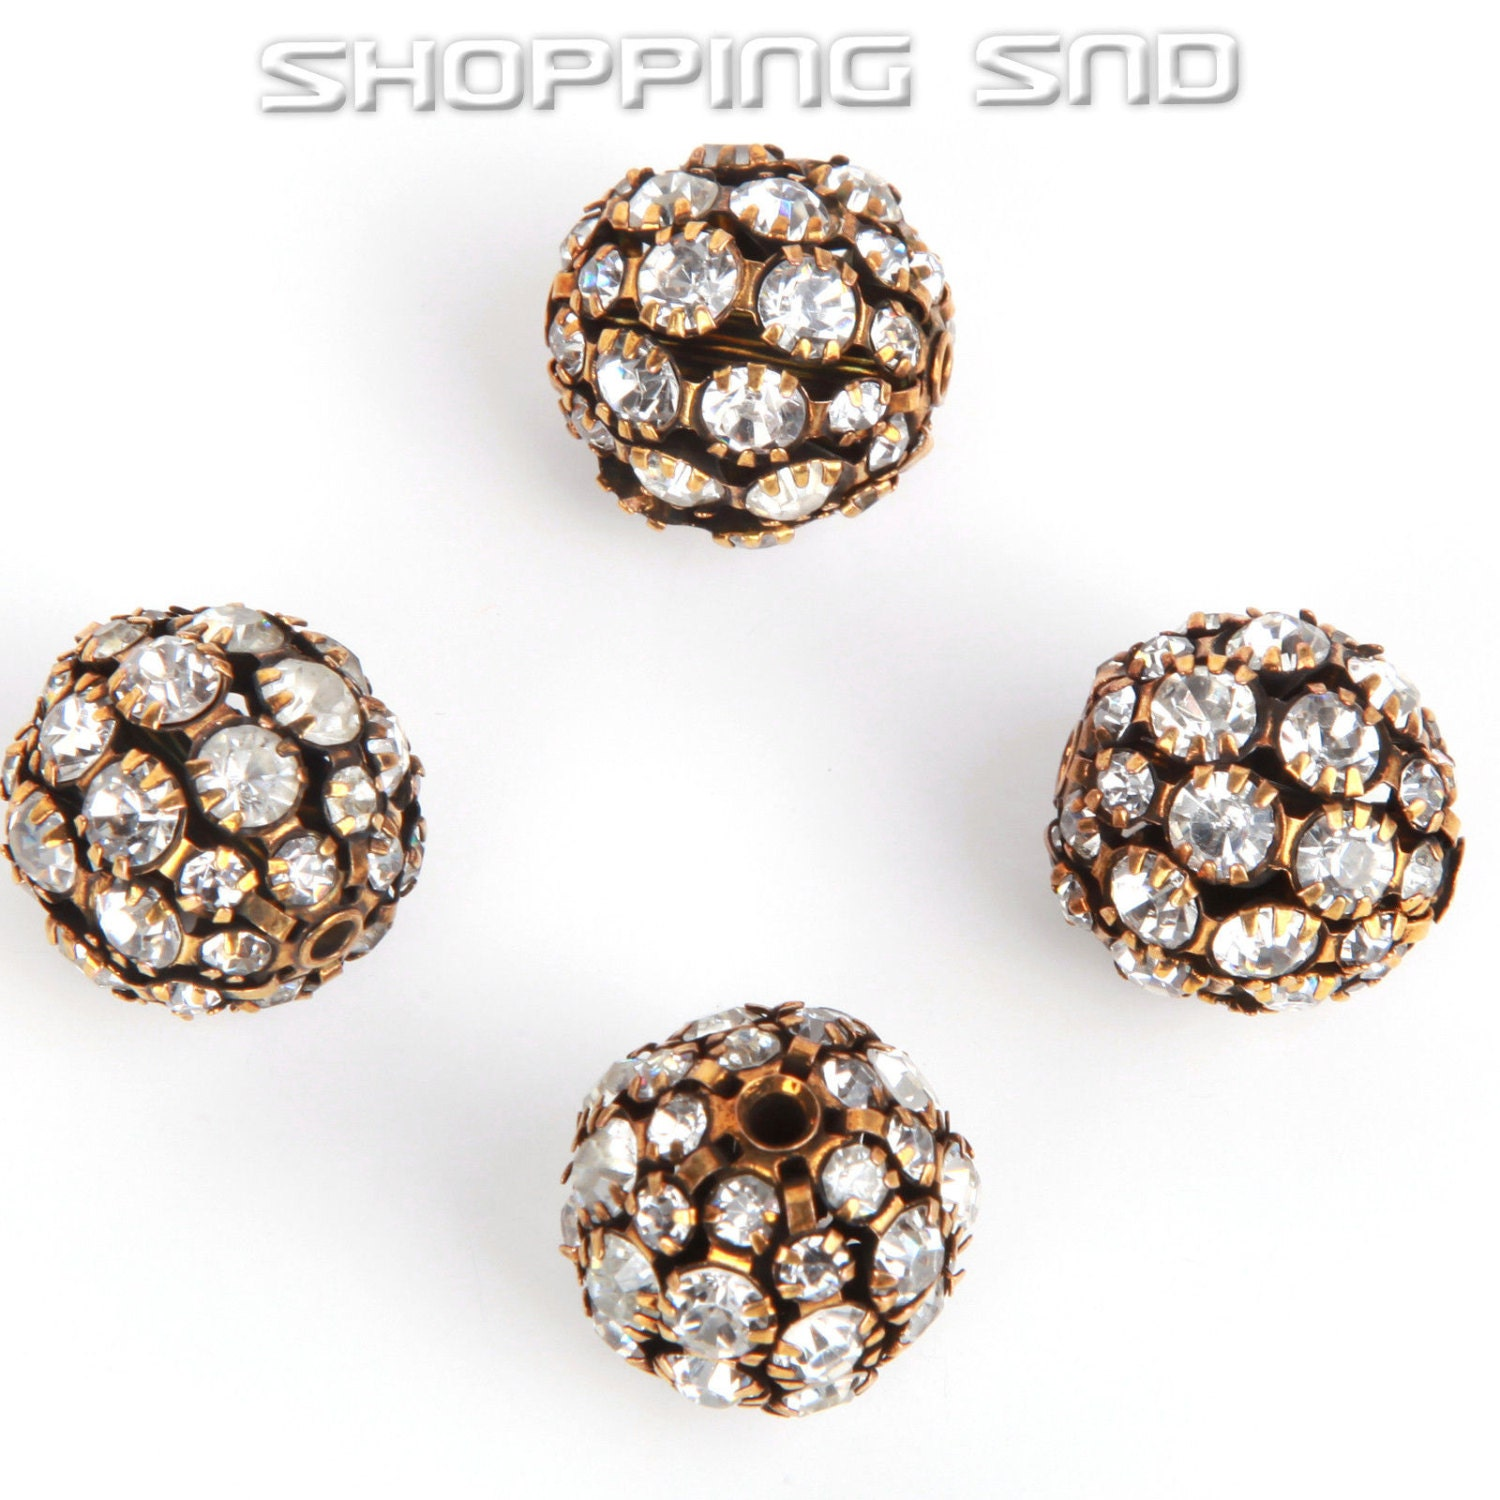 20mm Bead Beads: 20mm Hollow Round Ball Spacer Beads Bronze Pave White Crystal